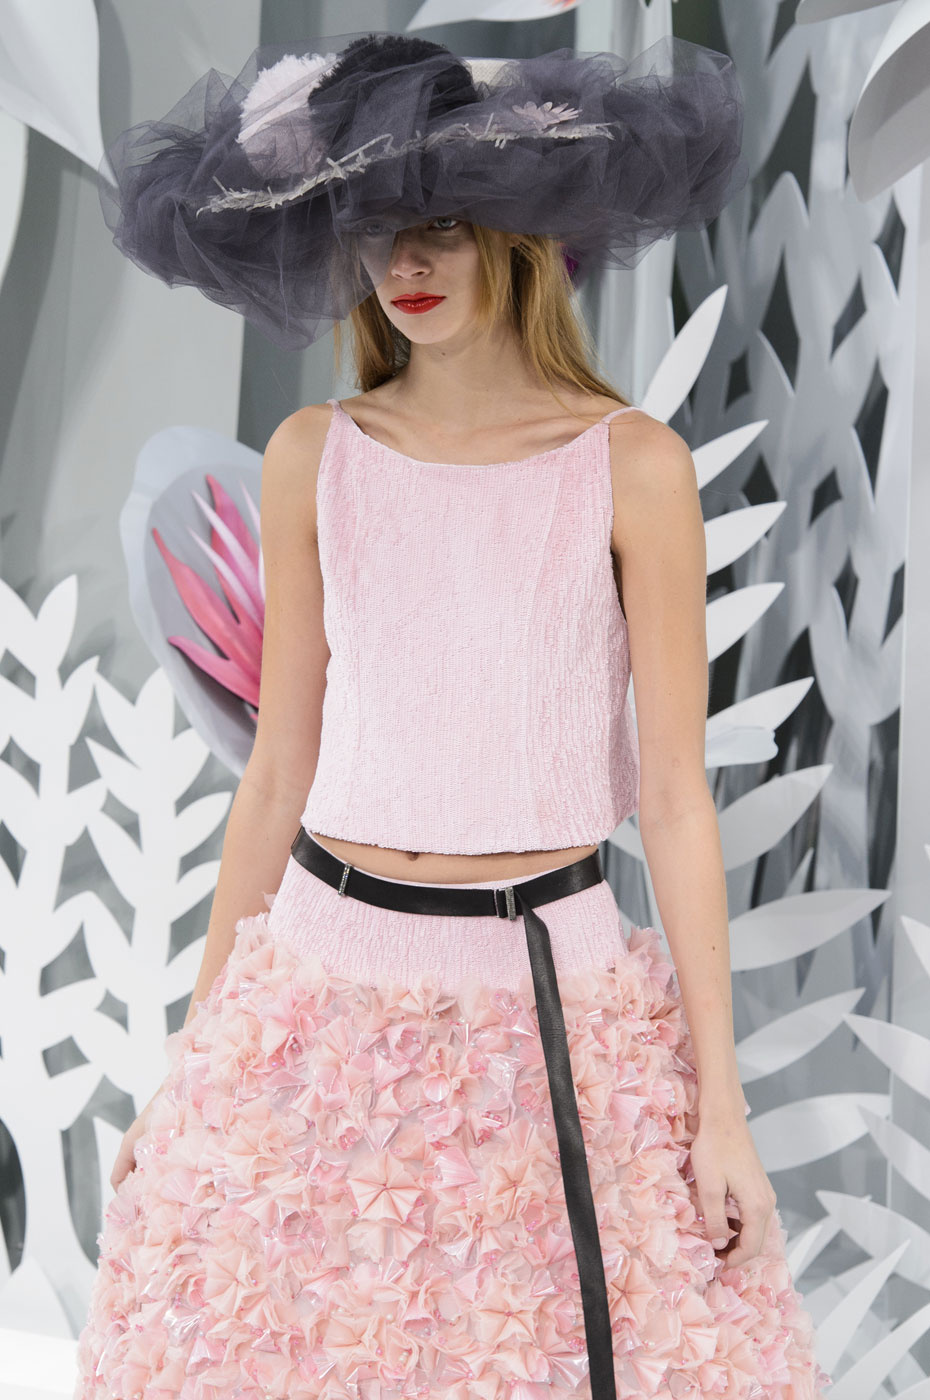 Chanel-fashion-runway-show-haute-couture-paris-spring-summer-2015-the-impression-150